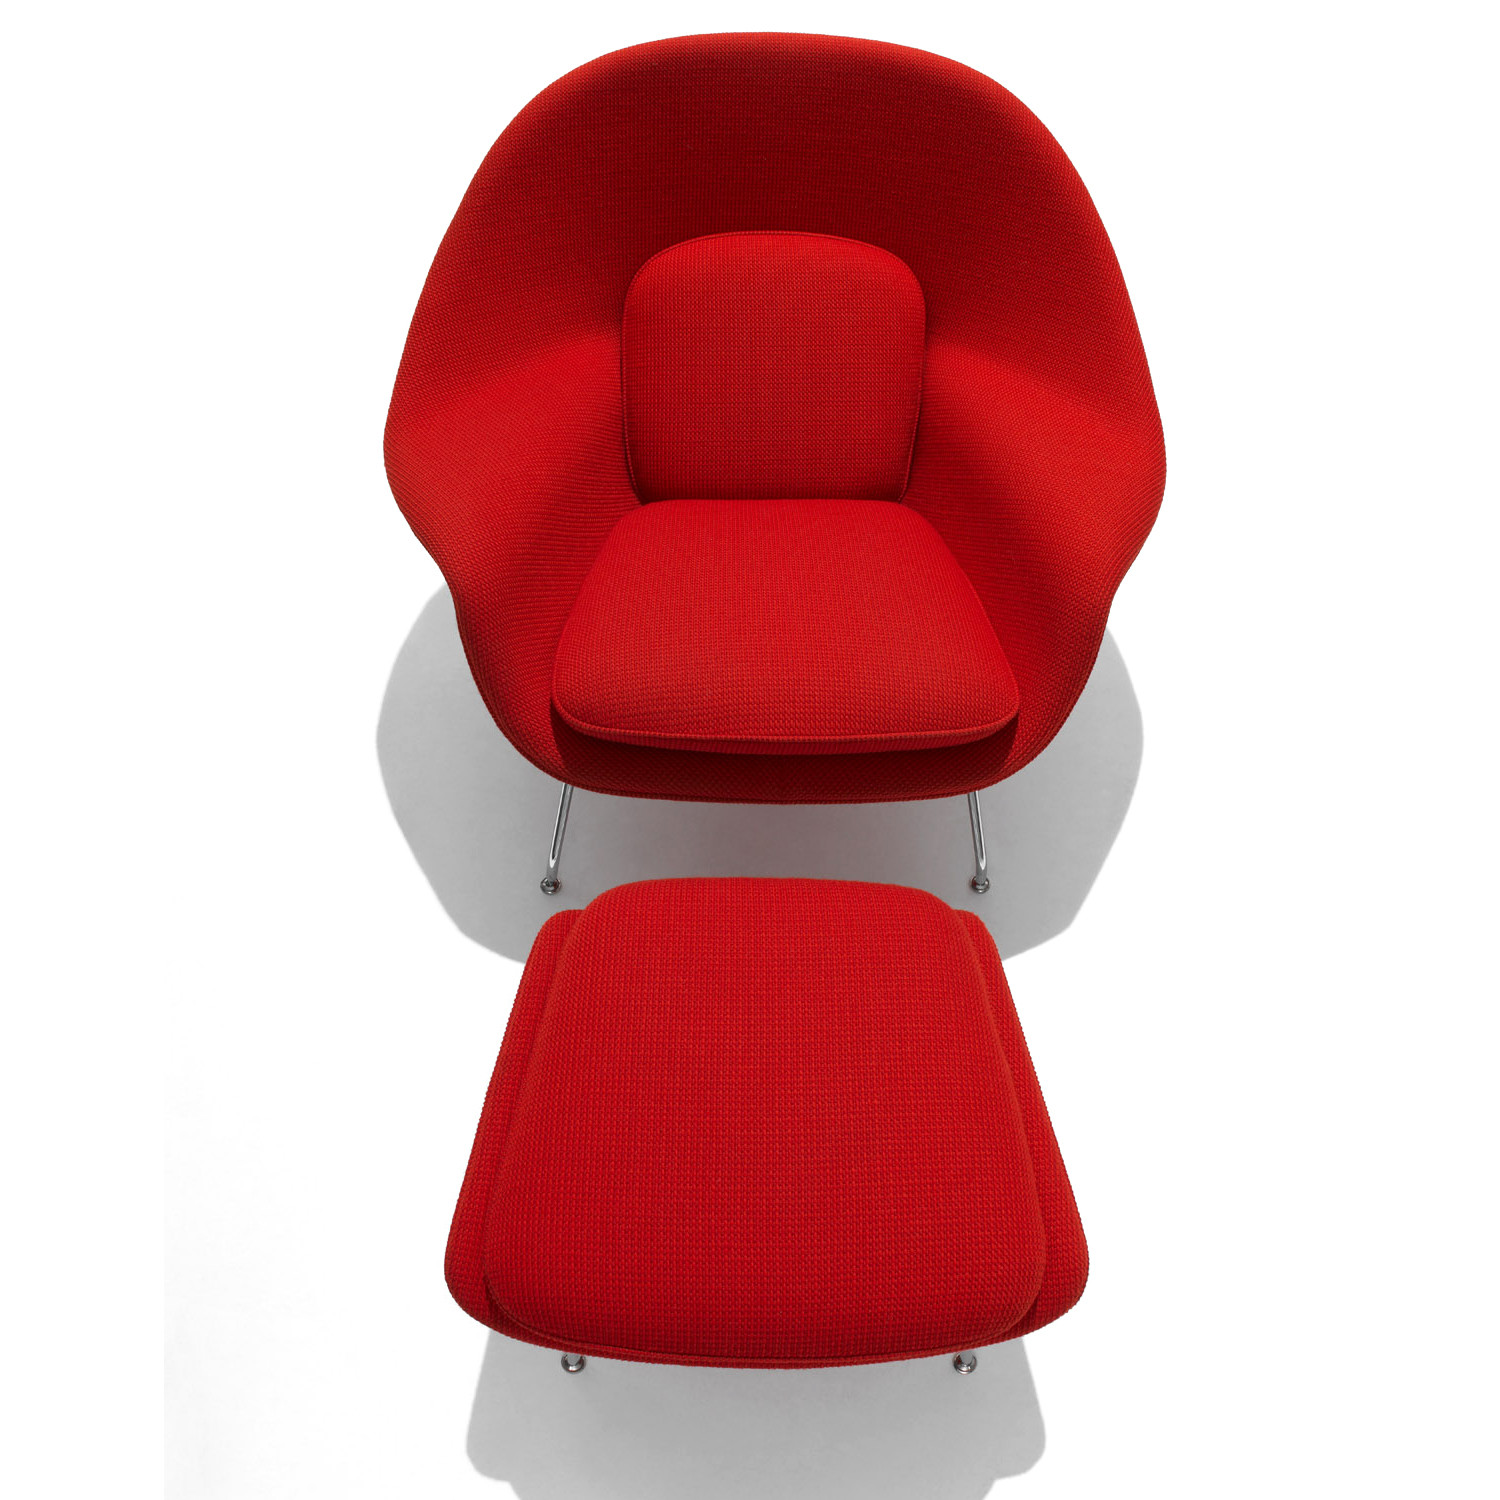 skandium chair womb